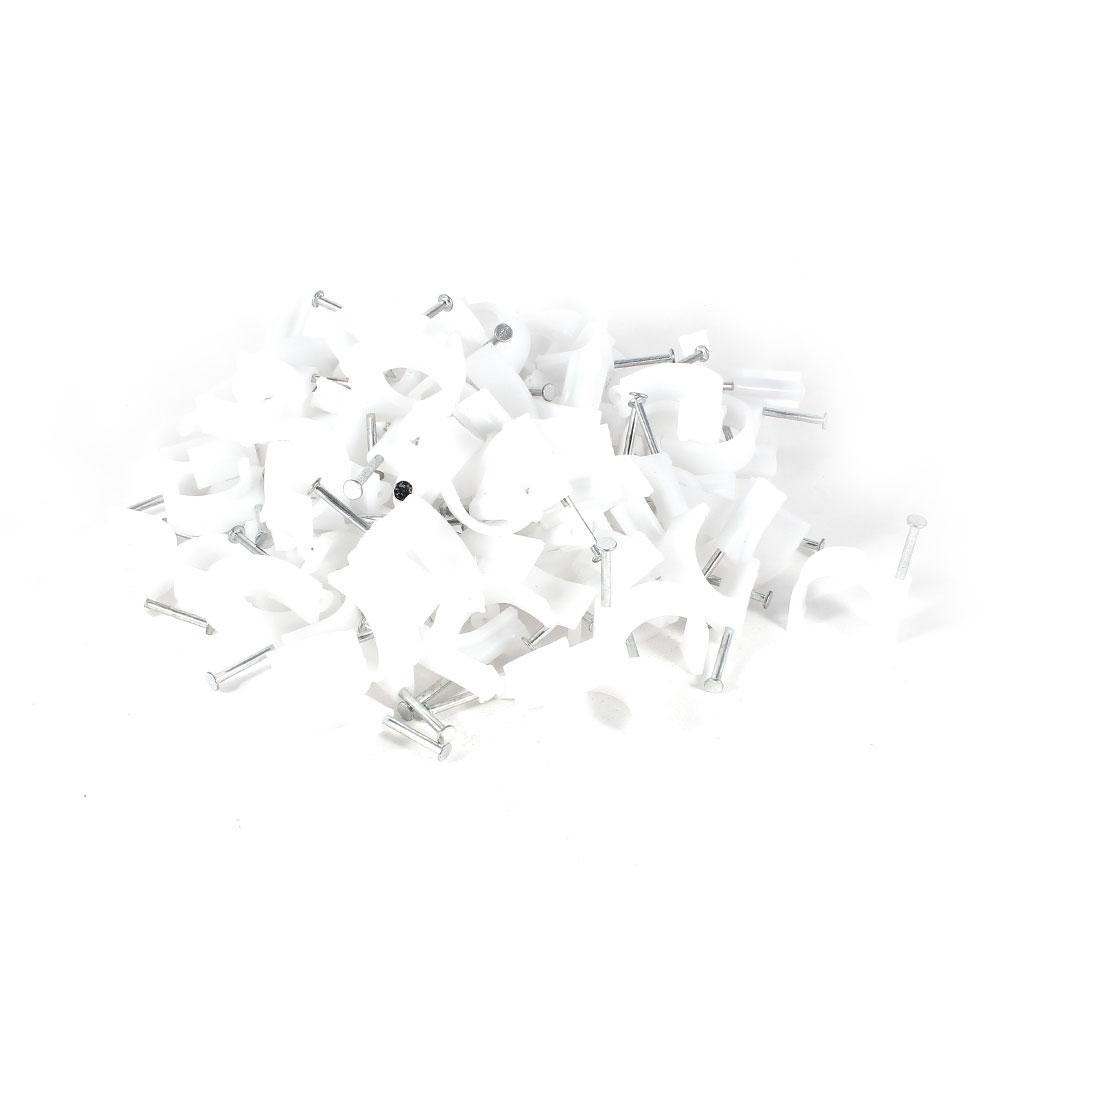 100 Pcs White 25mm Diameter Coax Cable Inserting Circle Nail Clips